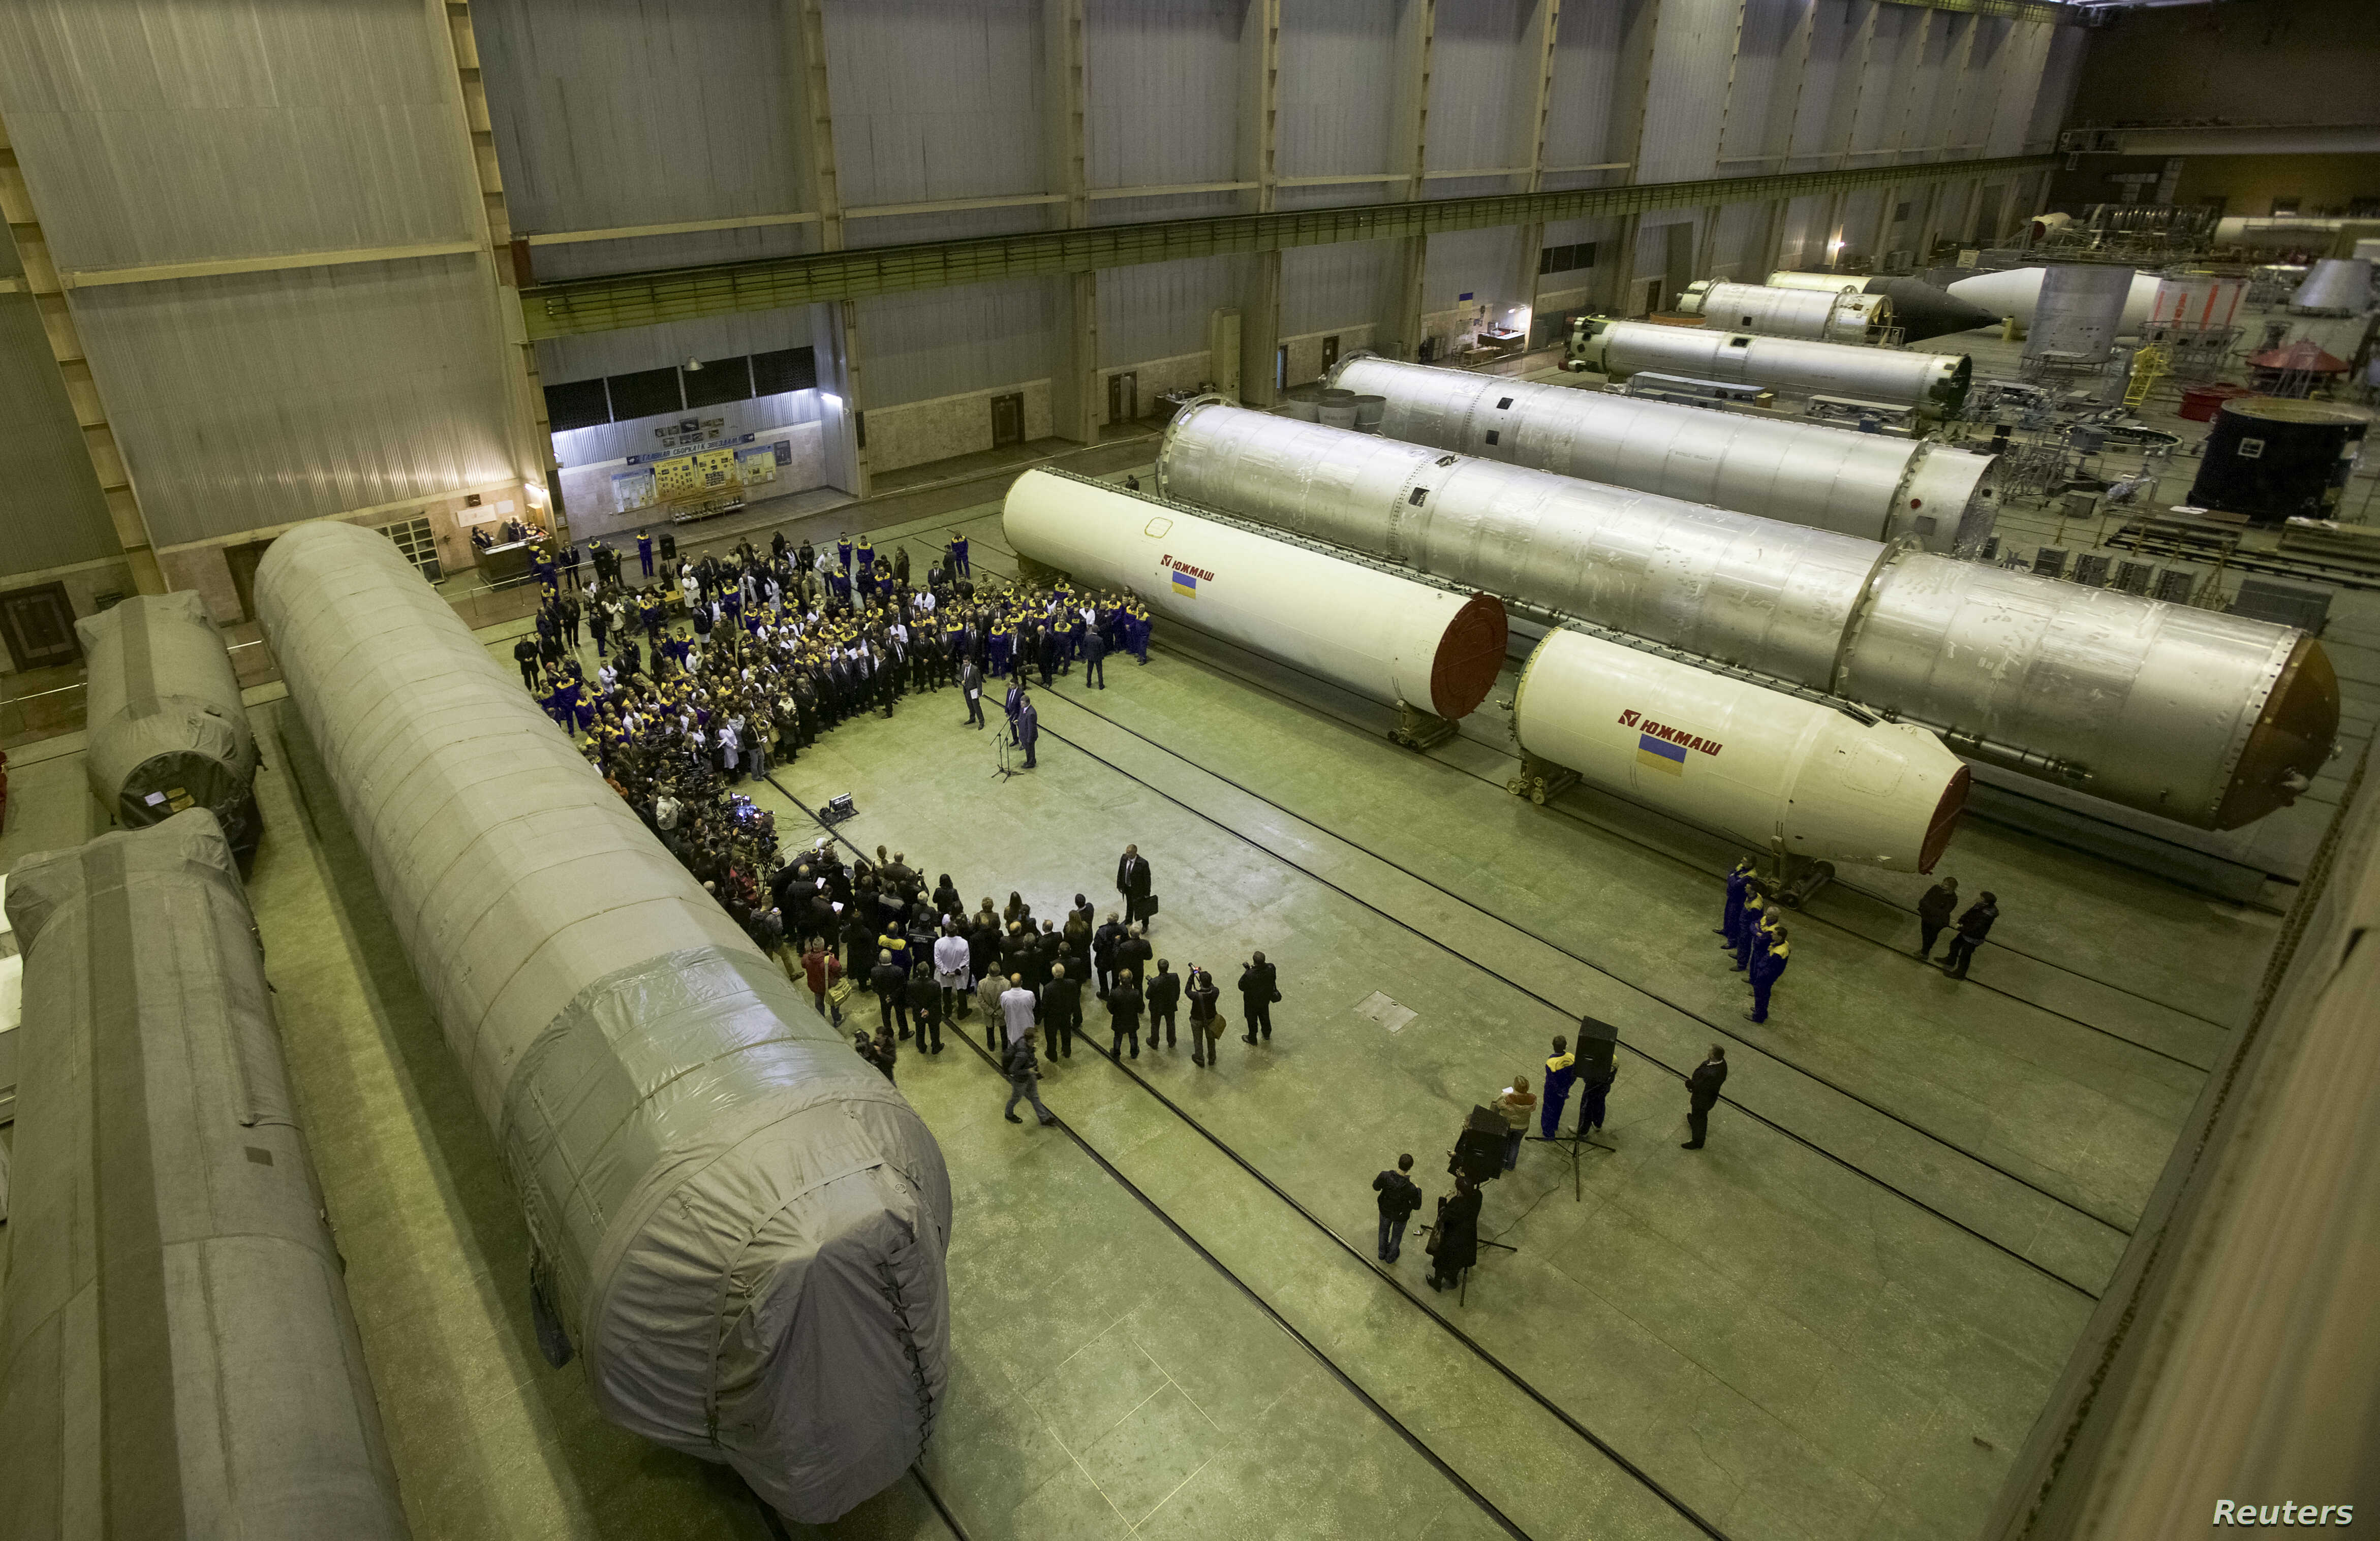 FILE - A general view shows one of the work facilities of Ukrainian state-owned aerospace company Yuzhmash in Dnipro (formerly Dnipropetrovsk), Ukraine, Oct. 21, 2014.